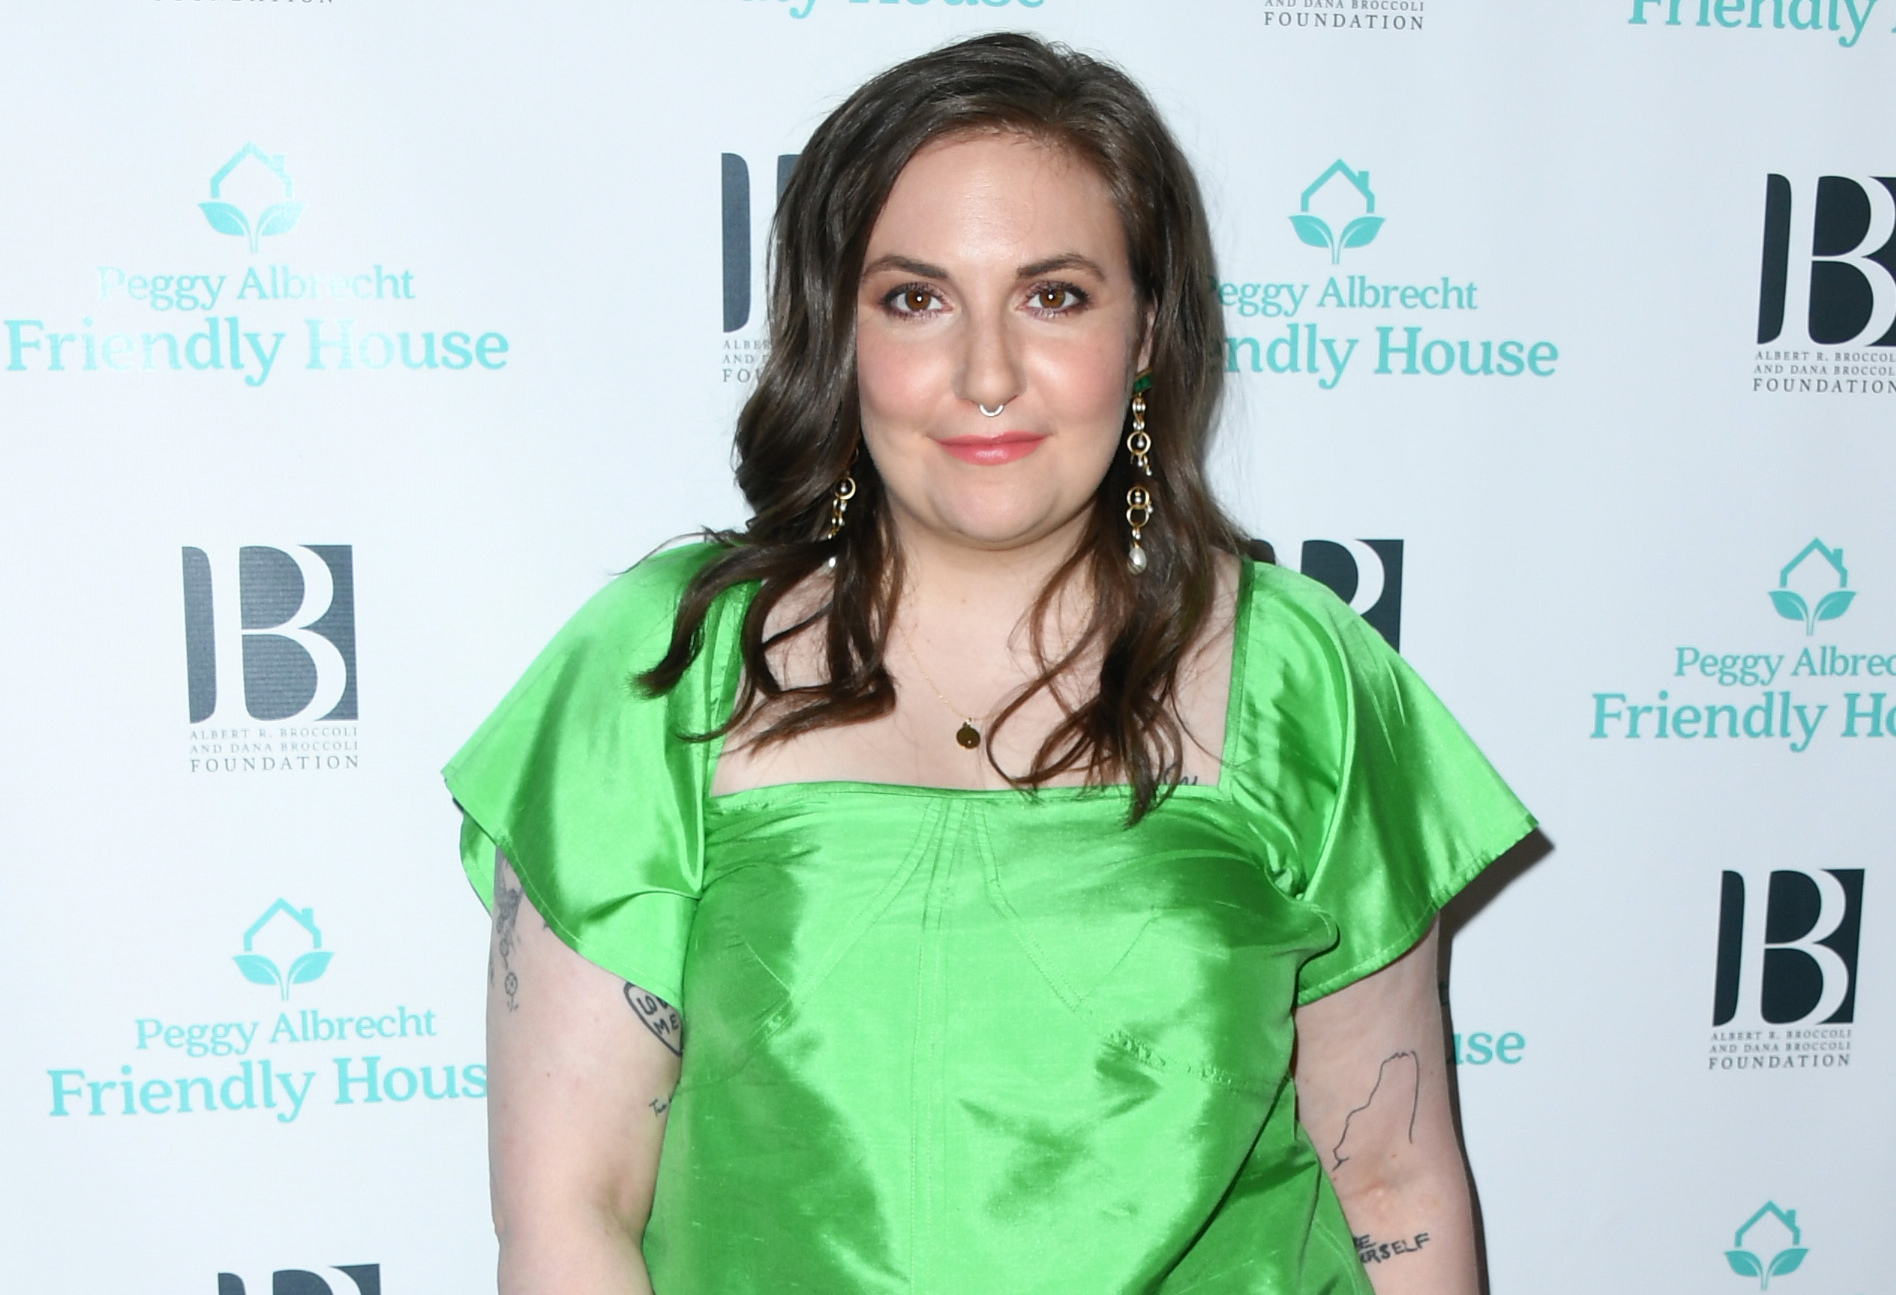 Lena Dunham attends Friendly House 30th Annual Awards Luncheon at The Beverly Hilton Hotel on October 26, 2019 in Beverly Hills, California.